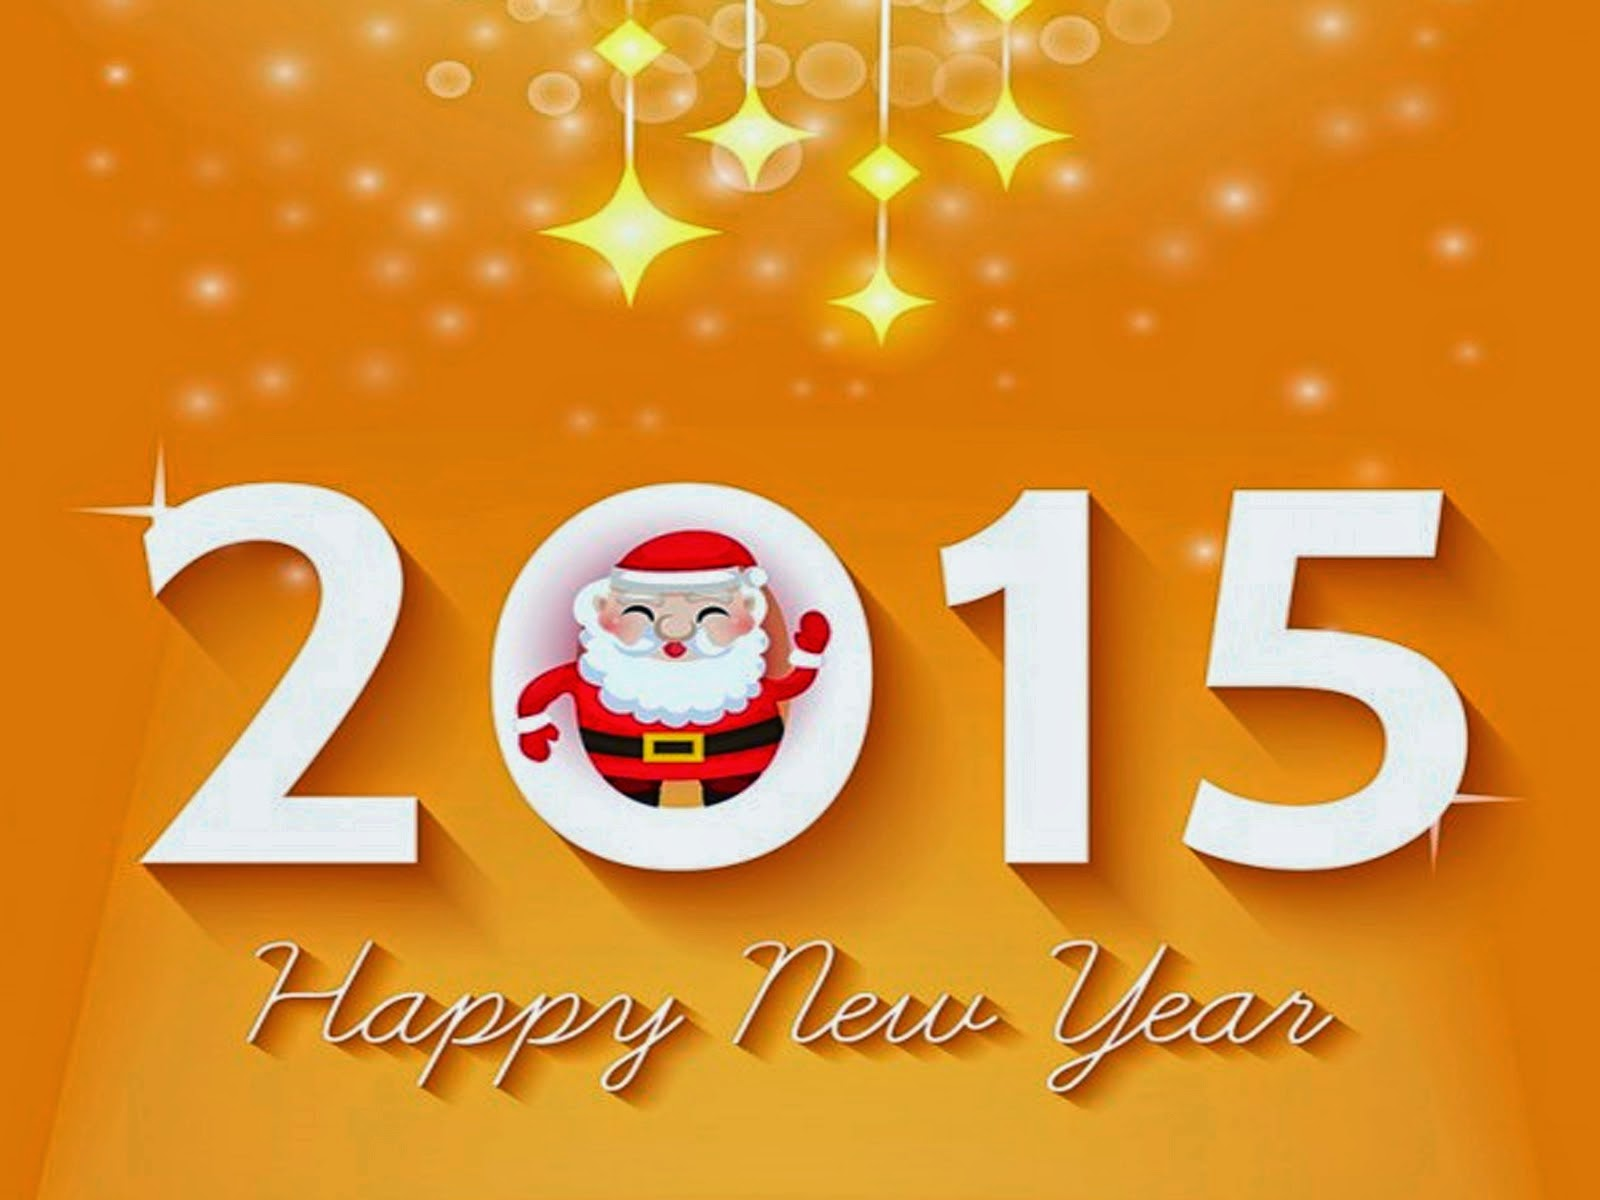 2015 happy new year wallpaper